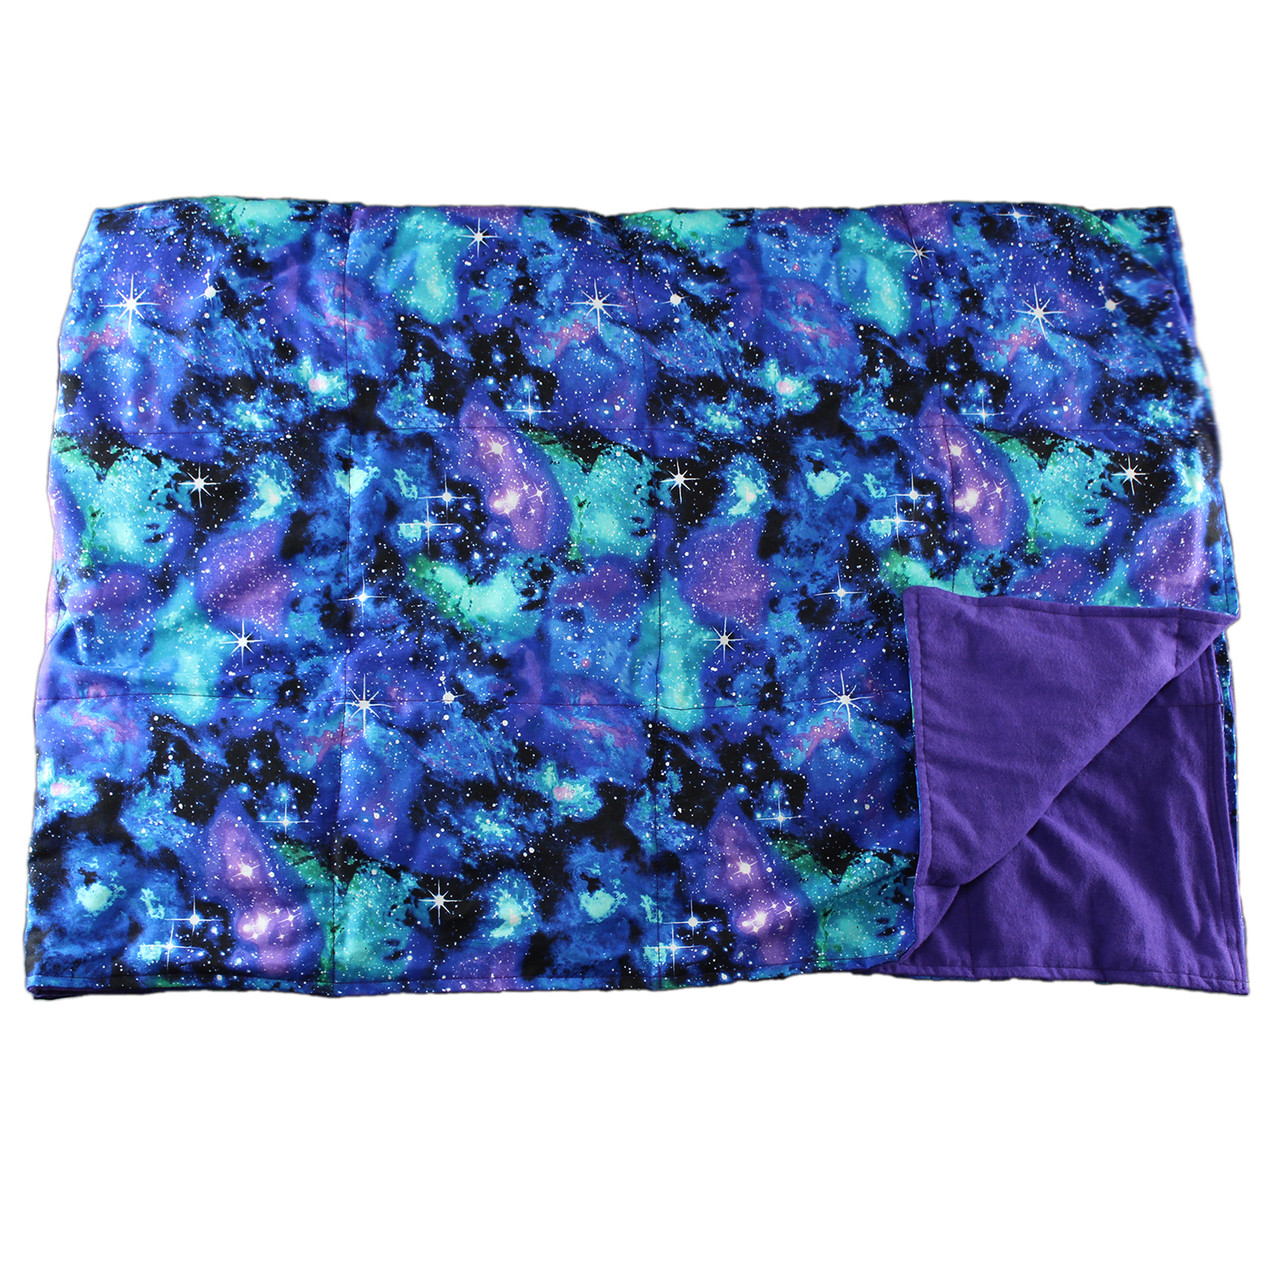 10 LB Weighted Blanket – Galaxy - Washable - OUTLET SALE